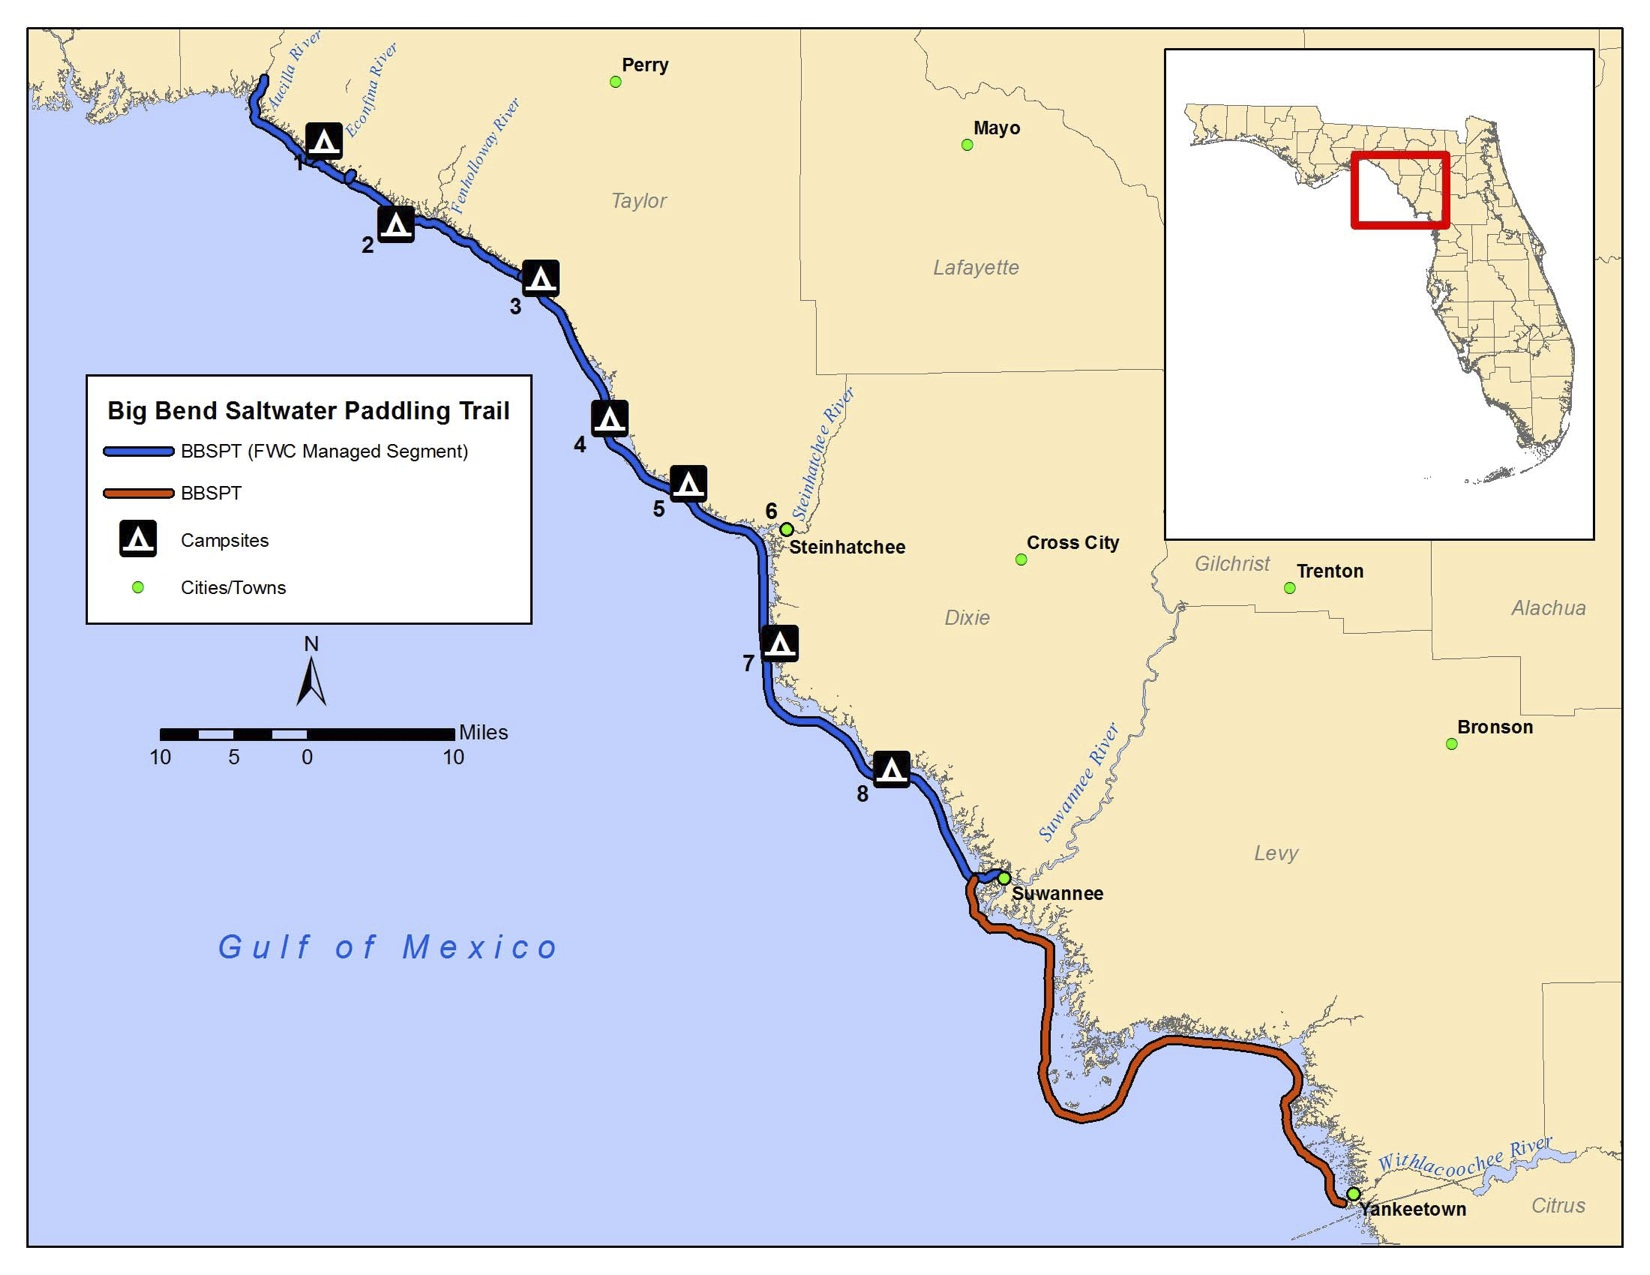 Big-Bend-Saltwater-Paddling-Trail-Overview-Map